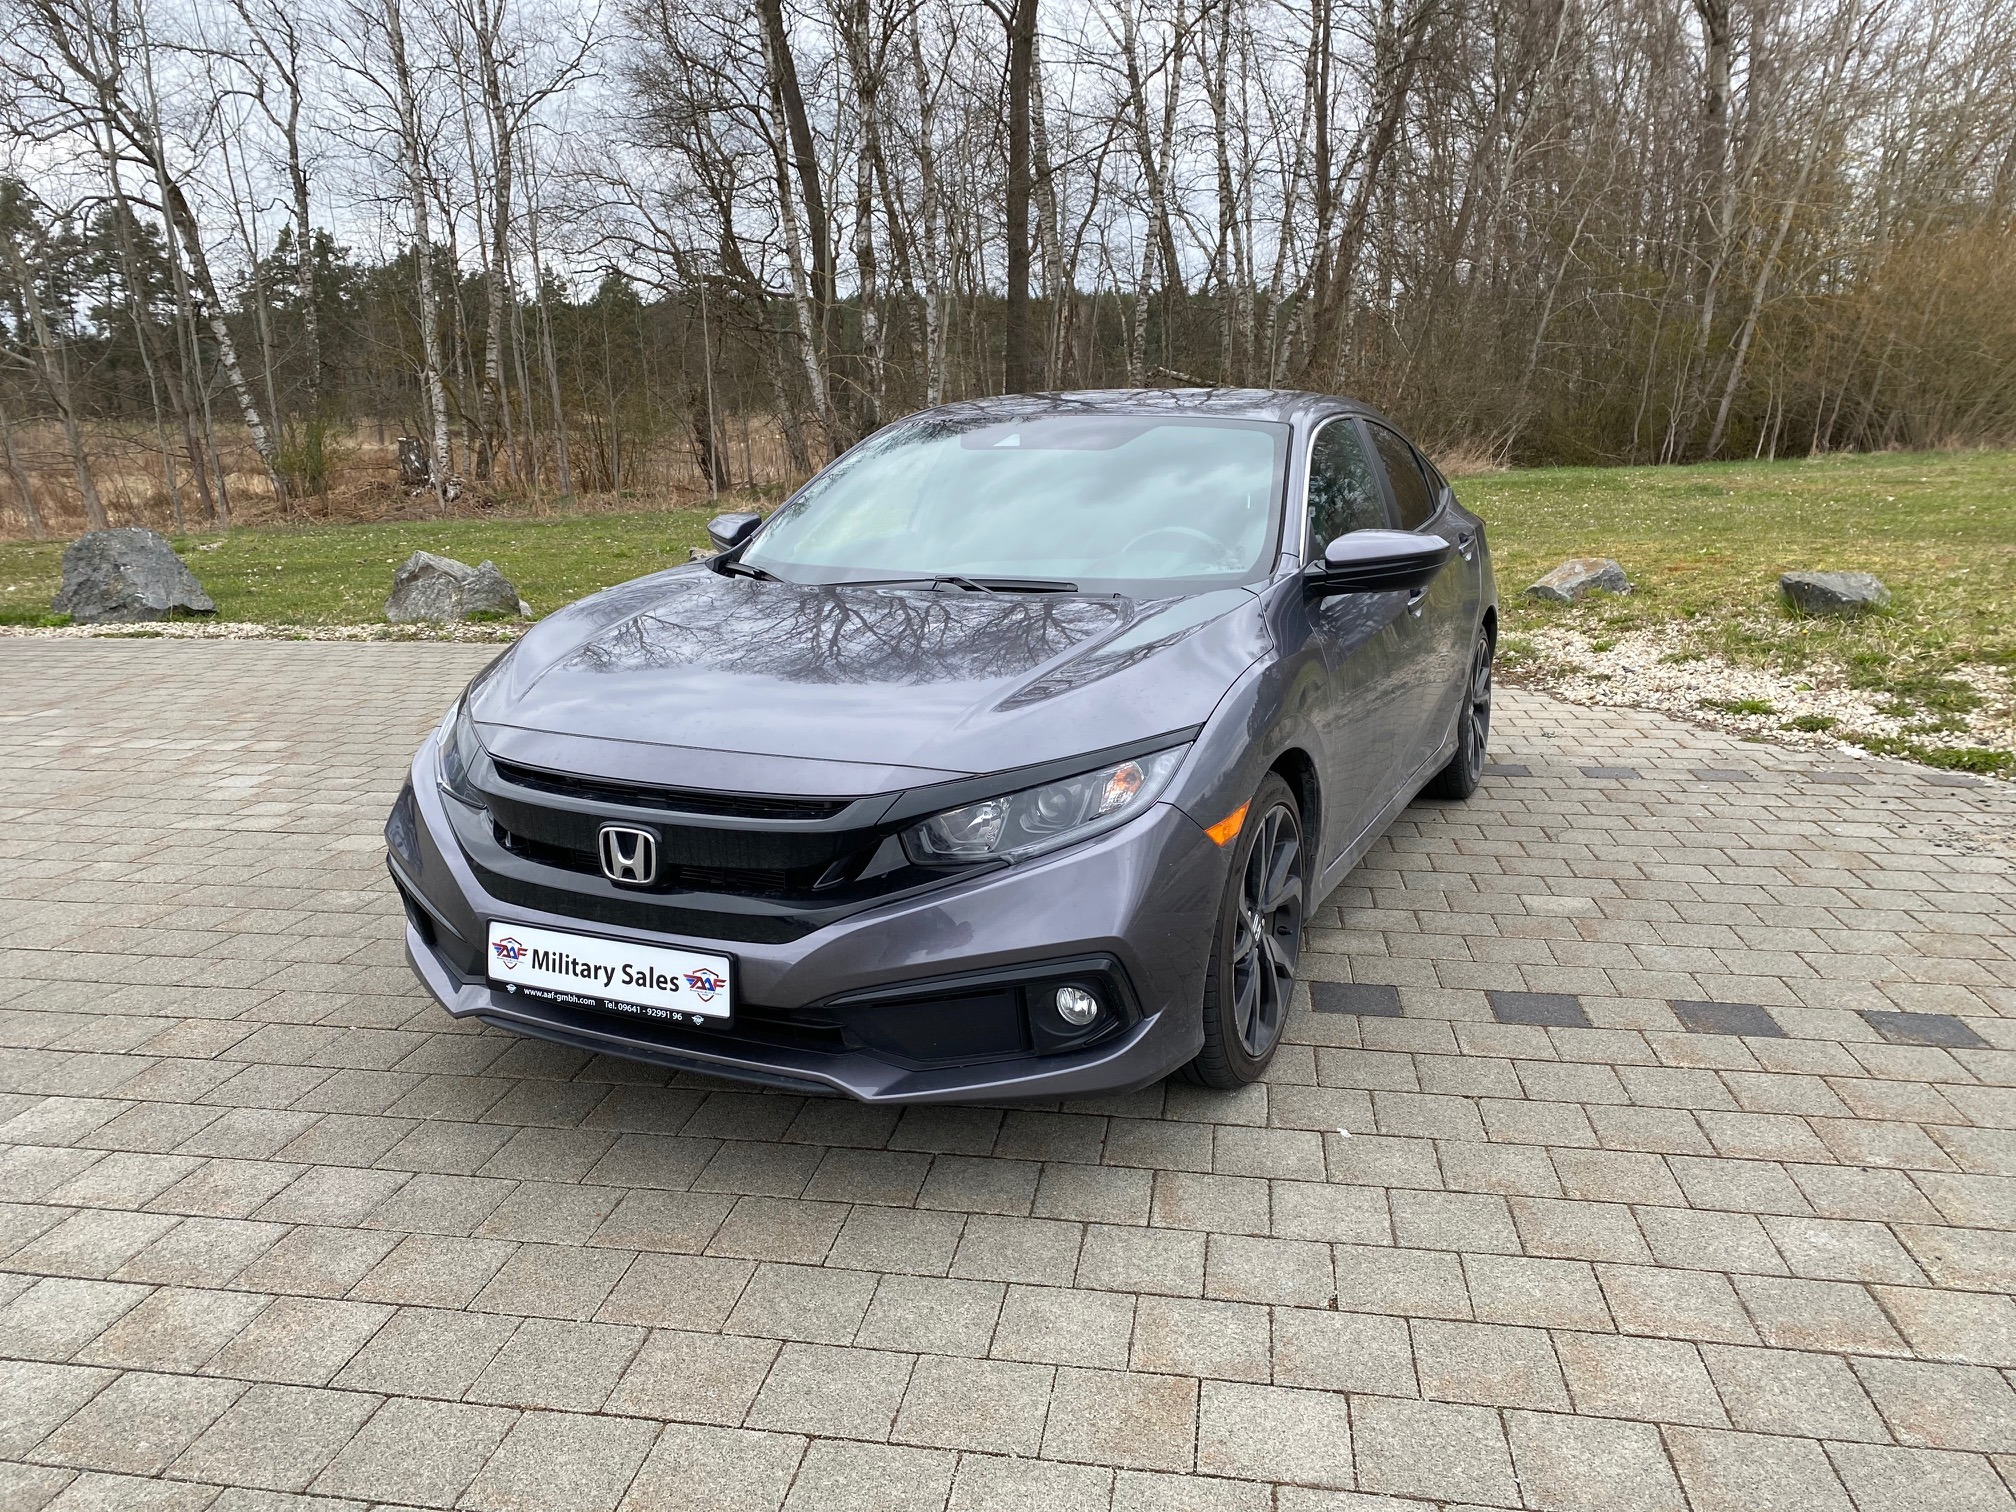 2019 Honda Civic Sport</br>as low as </br>$149 per paycheck